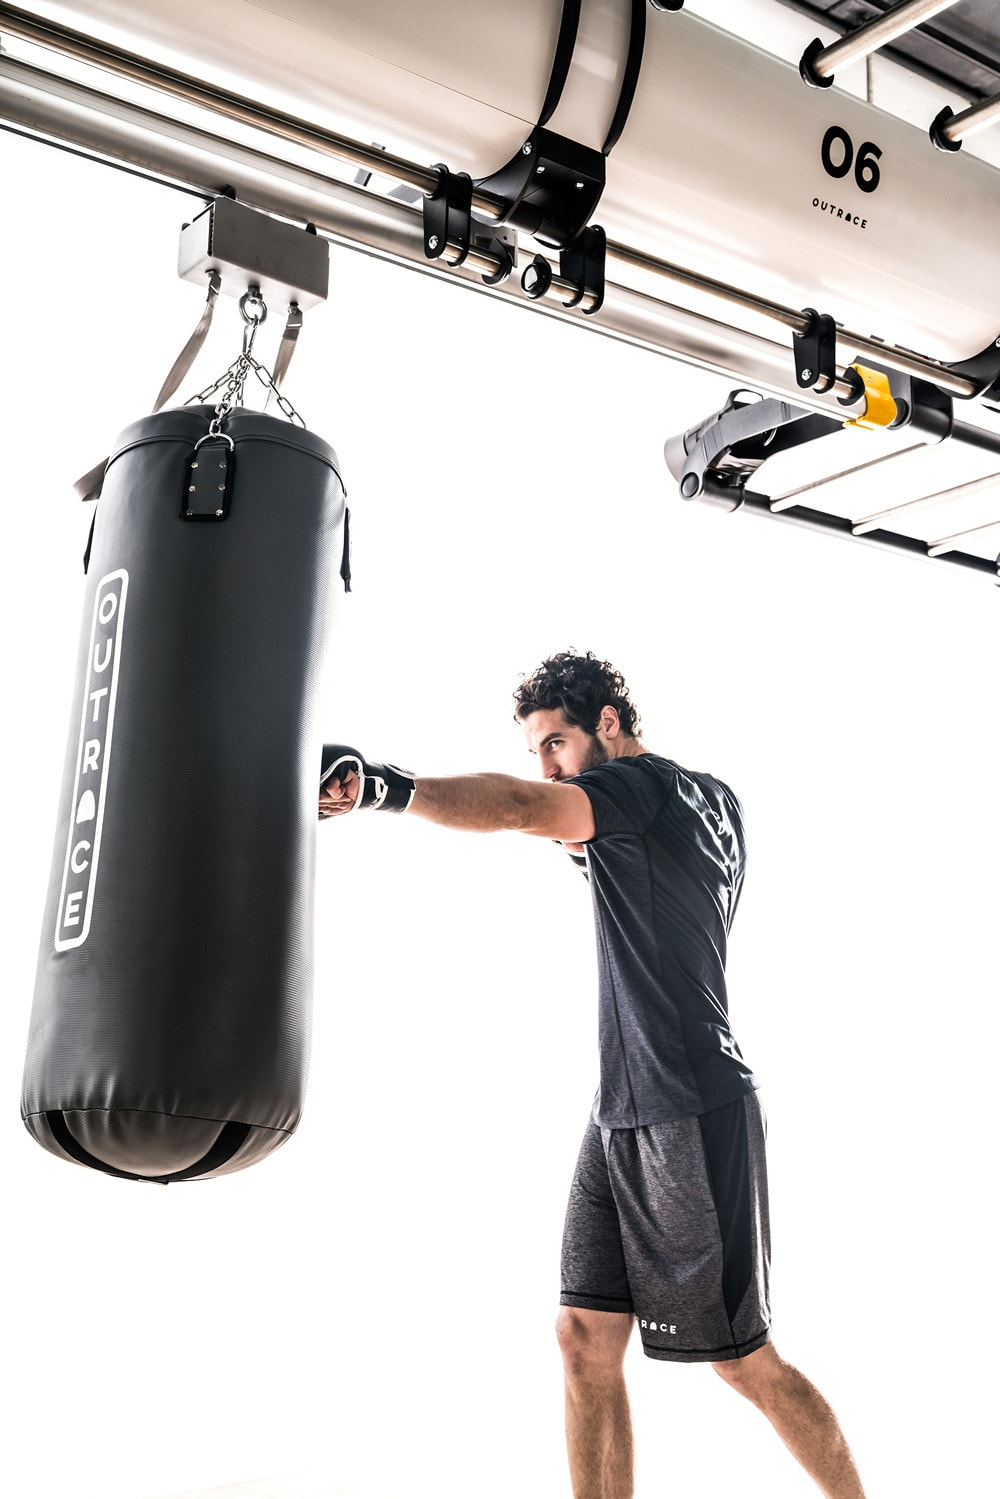 Punching Bag Cylindrical Shape For High Intensity Use